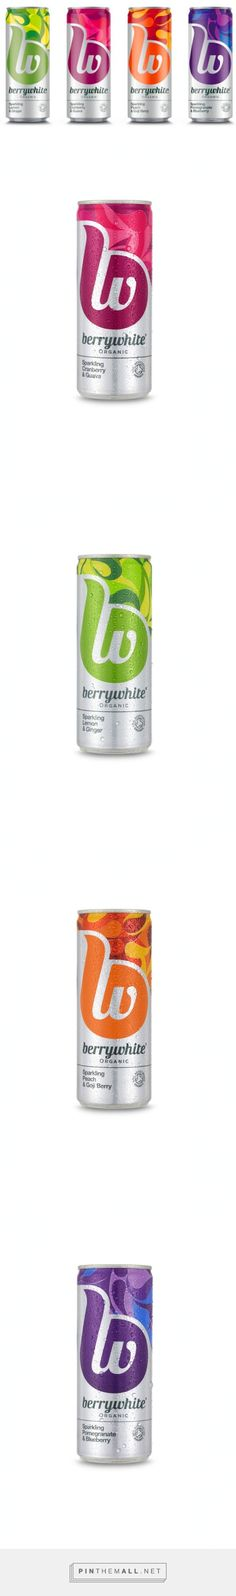 Berrywhite on Packaging of the World - Creative Package Design Gallery - created via http://pinthemall.net